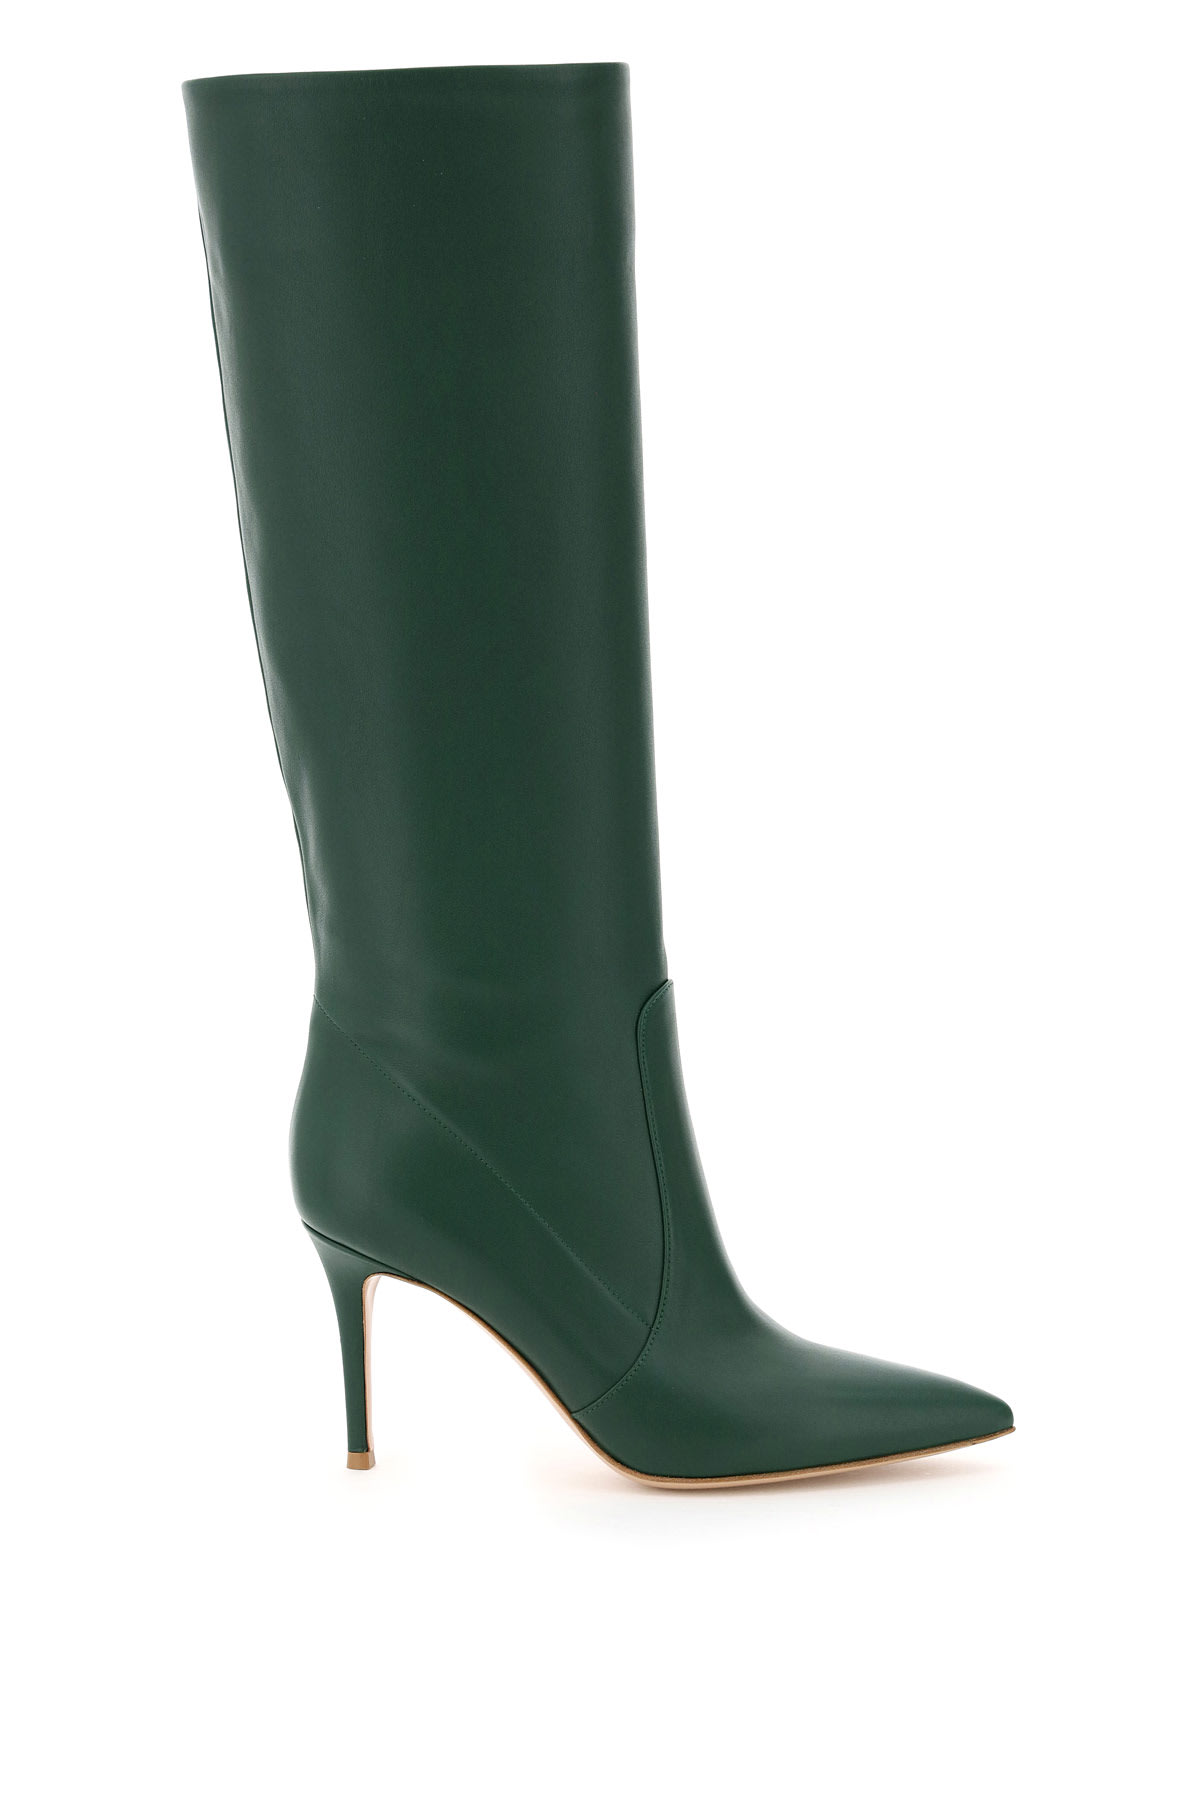 Gianvito Rossi LEATHER HEELED BOOTS